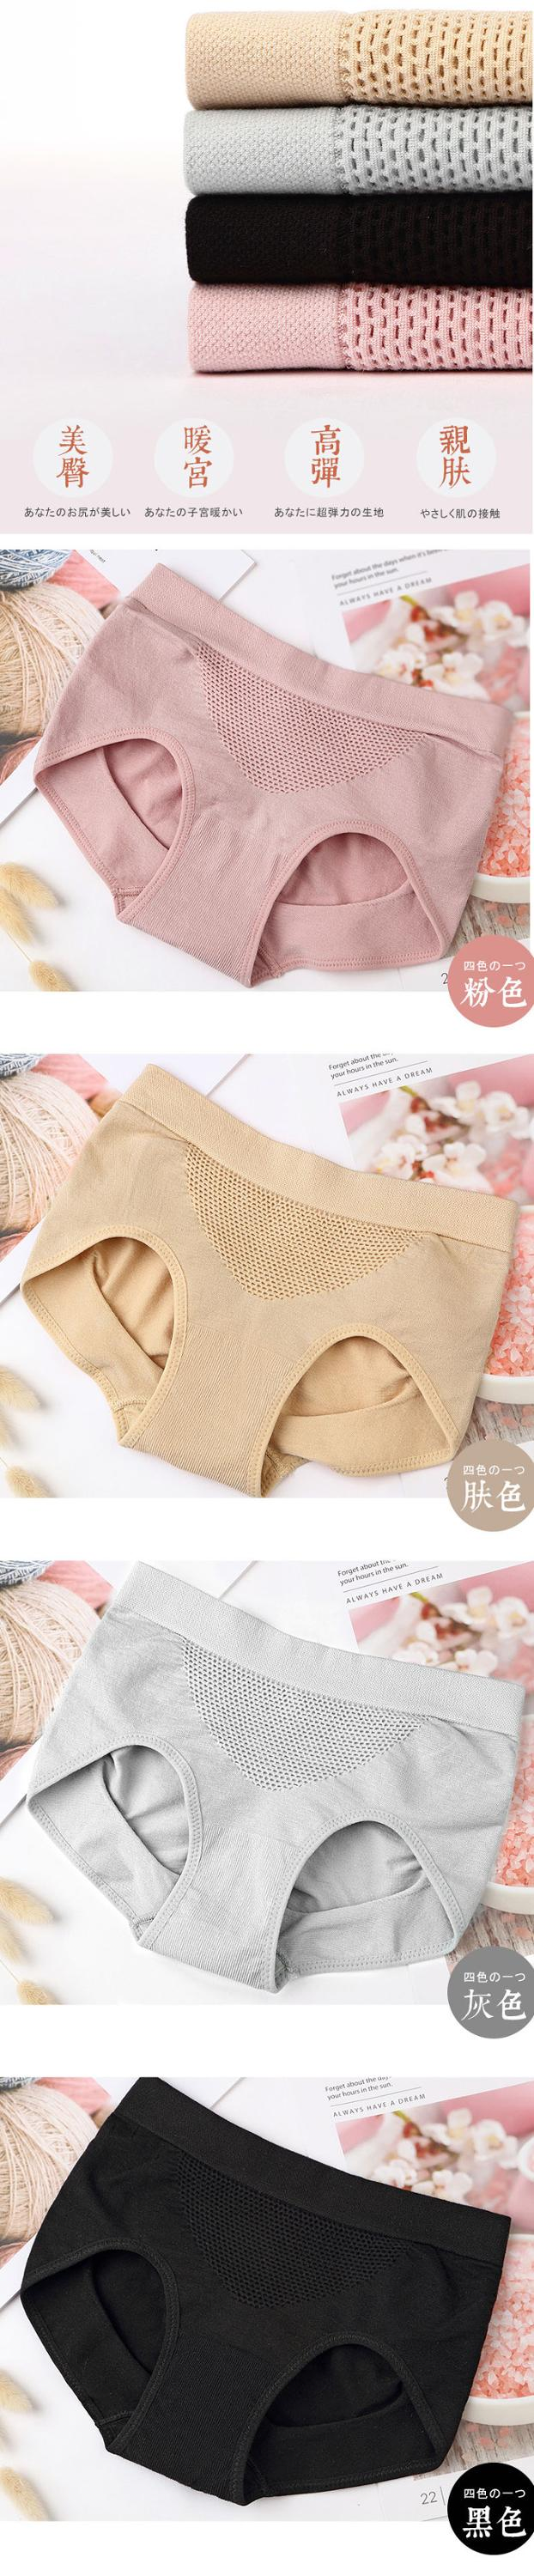 Item 534  wholesale  women middle waist pure briefs  honeycomb traceless  seamless hip up panties